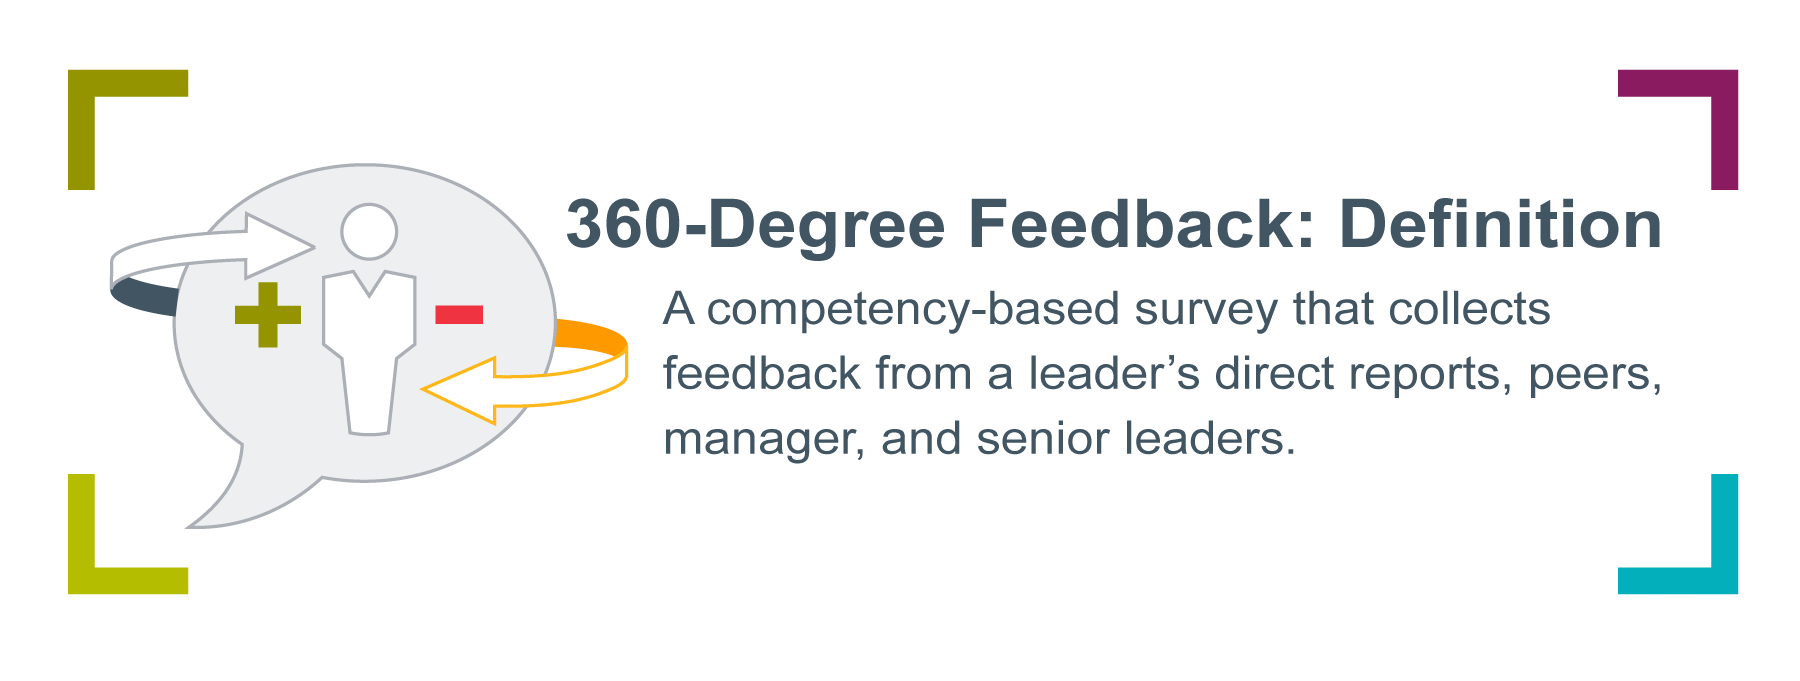 Graphic of a person in a quote icon with a plus sign and minus sign on either side, with arrows circling around. Accompanied by the definition of 360-degree feedback, which is